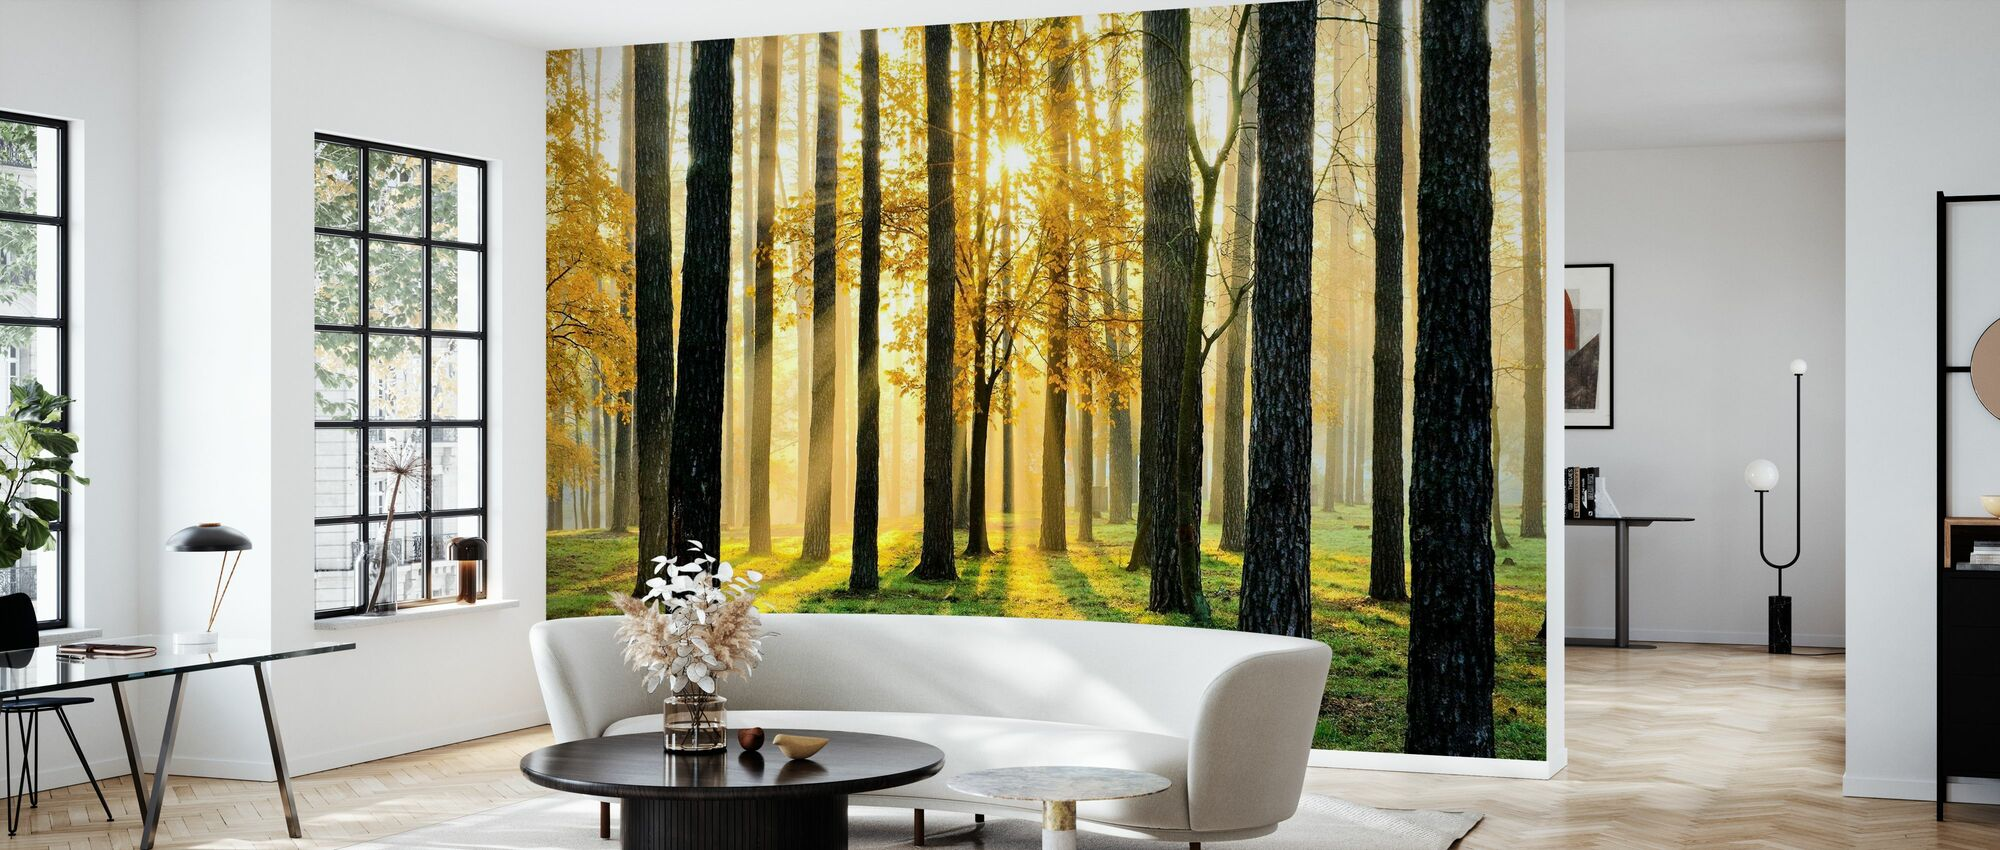 Morning Scene - Wallpaper - Living Room